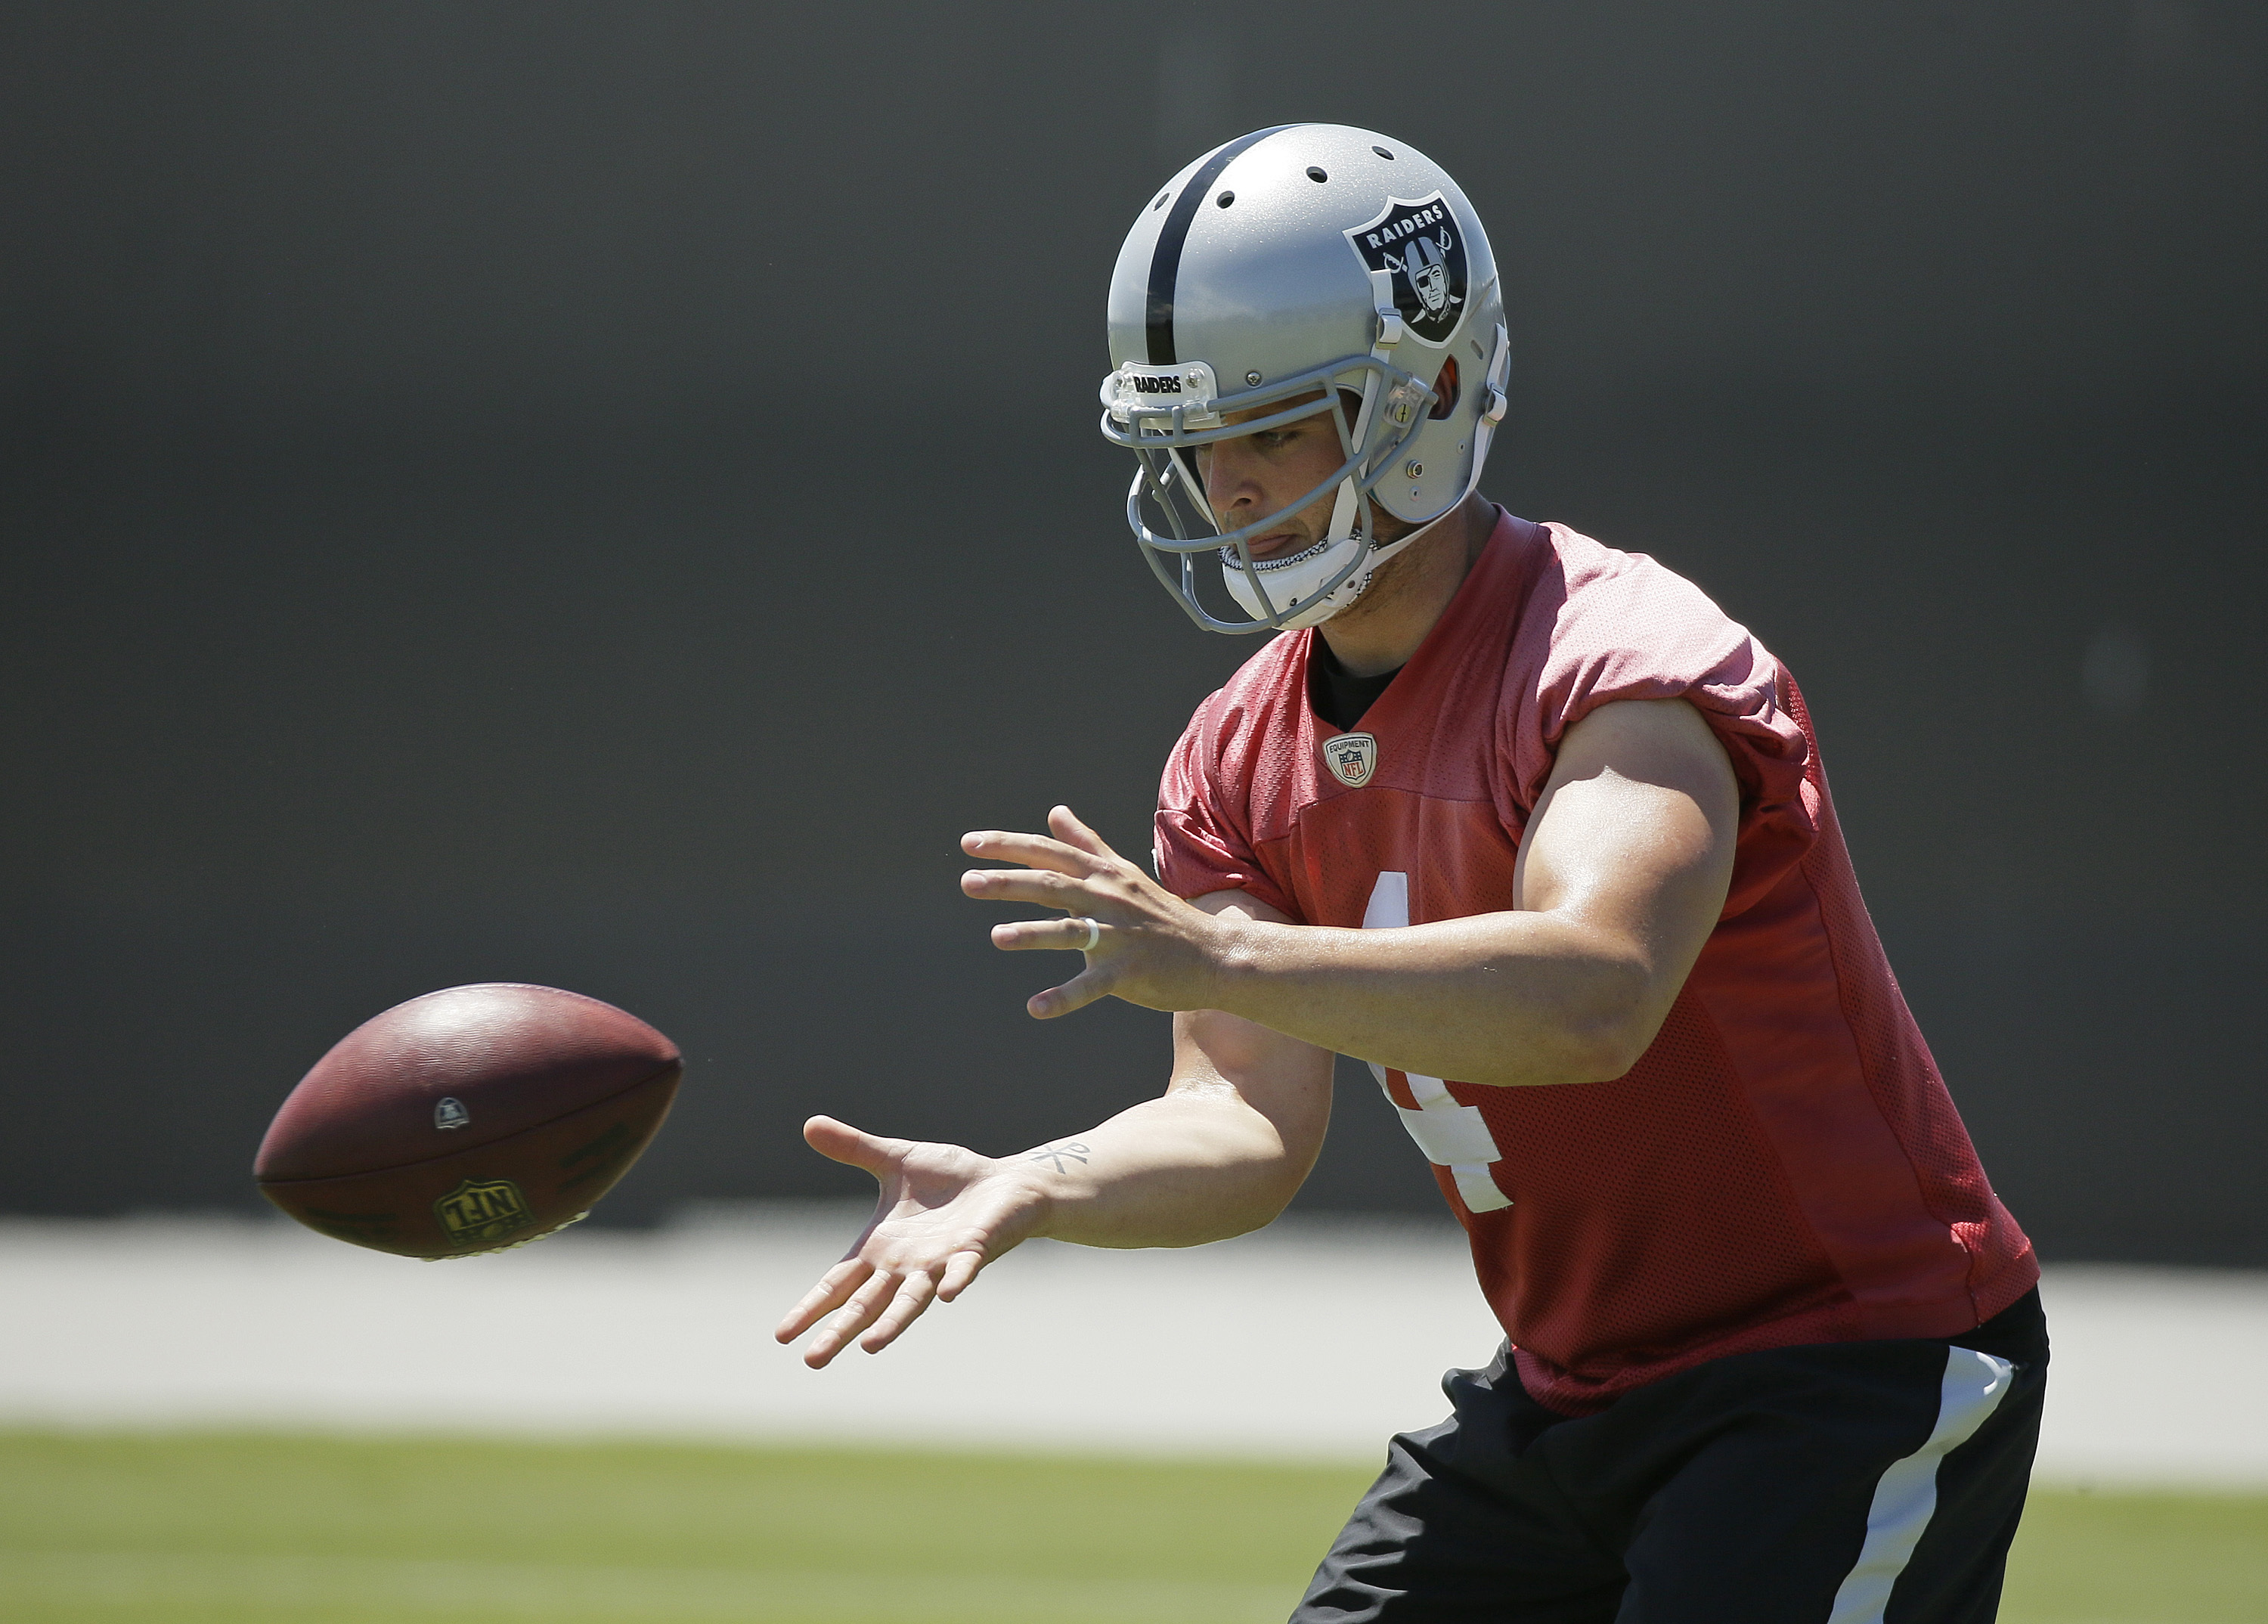 Oakland Raiders quarterback Derek Carr catches a snap during the team's NFL football minicamp Wednesday, June 15, 2016, in Alameda, Calif. (AP Photo/Eric Risberg)